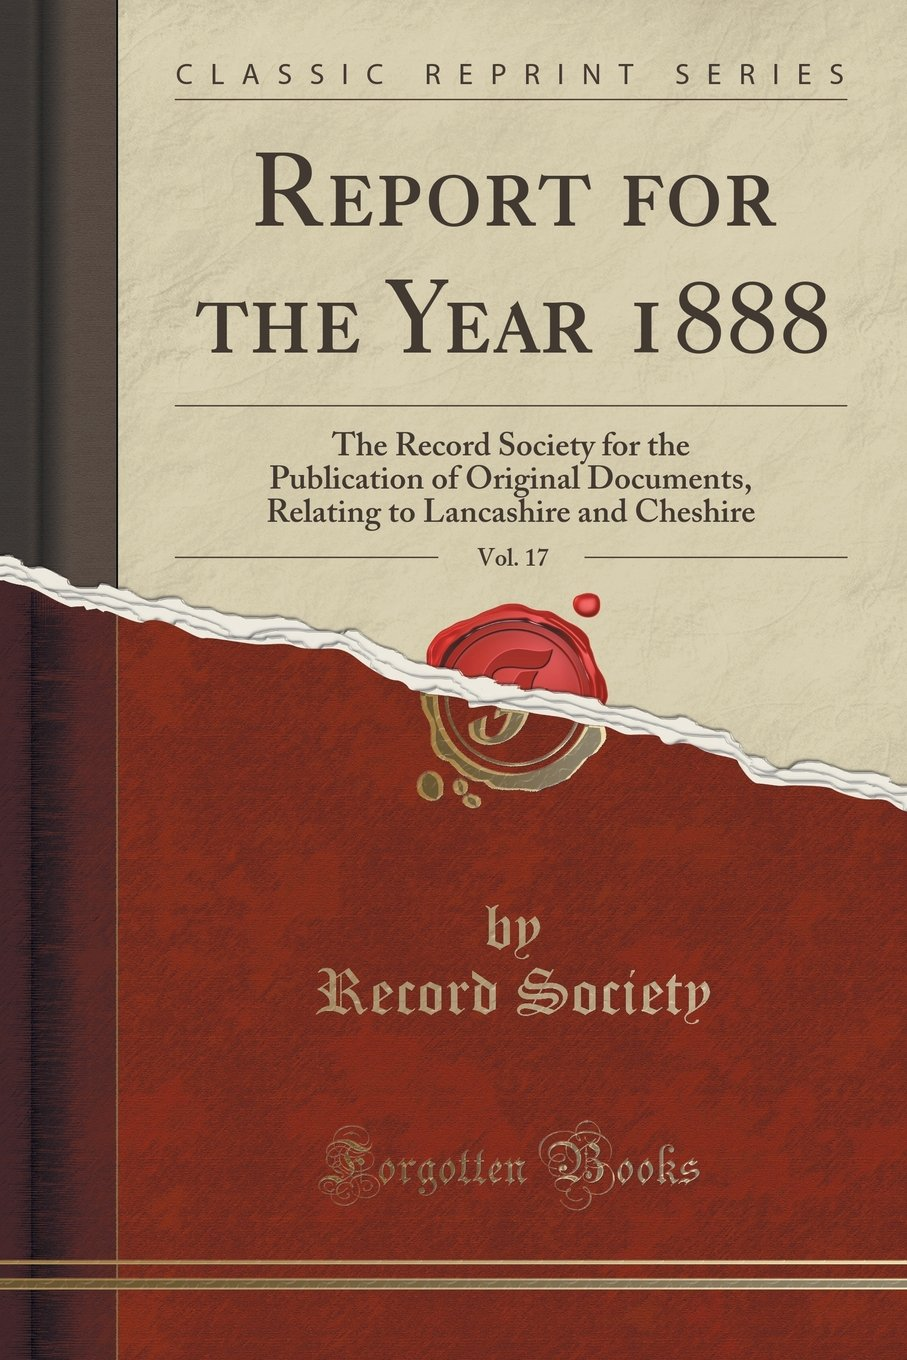 Report for the Year 1888, Vol. 17: The Record Society for the Publication of Original Documents, Relating to Lancashire and Cheshire (Classic Reprint) PDF